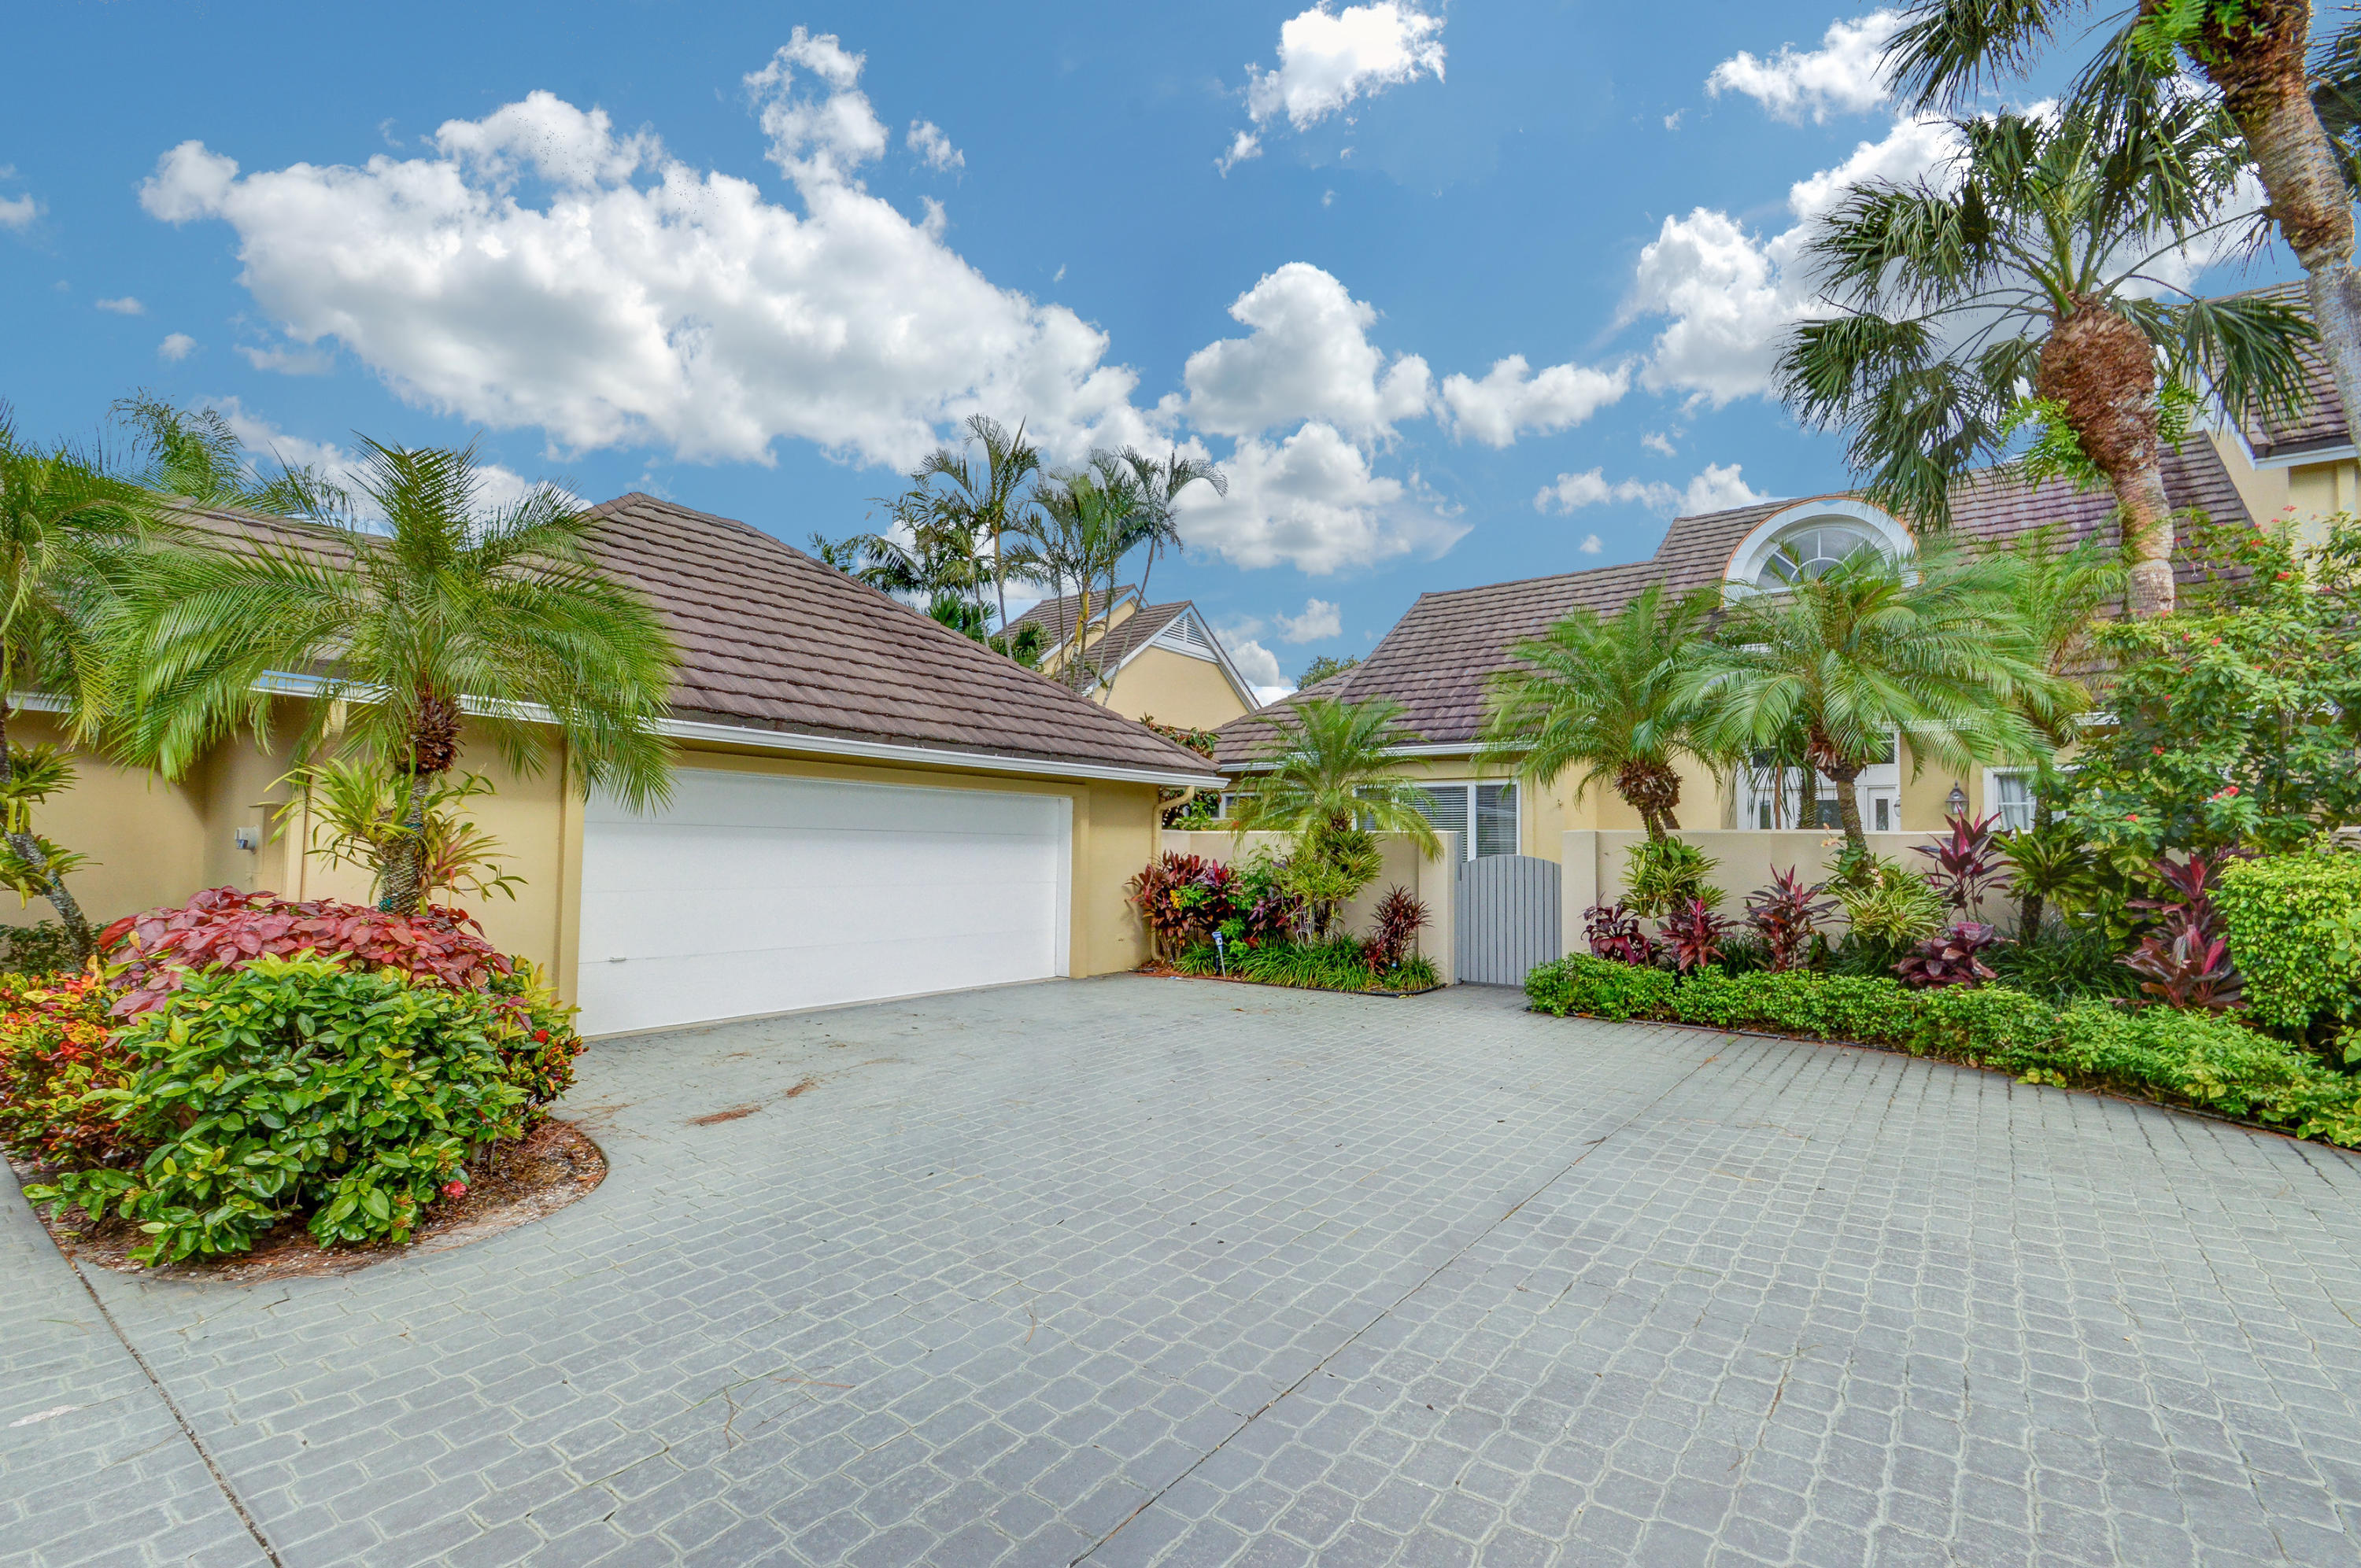 2600 Muirfield Court, Wellington, Florida 33414, 3 Bedrooms Bedrooms, ,3 BathroomsBathrooms,Townhouse,For Sale,Palm Beach Polo & CC,Muirfield,RX-10380641